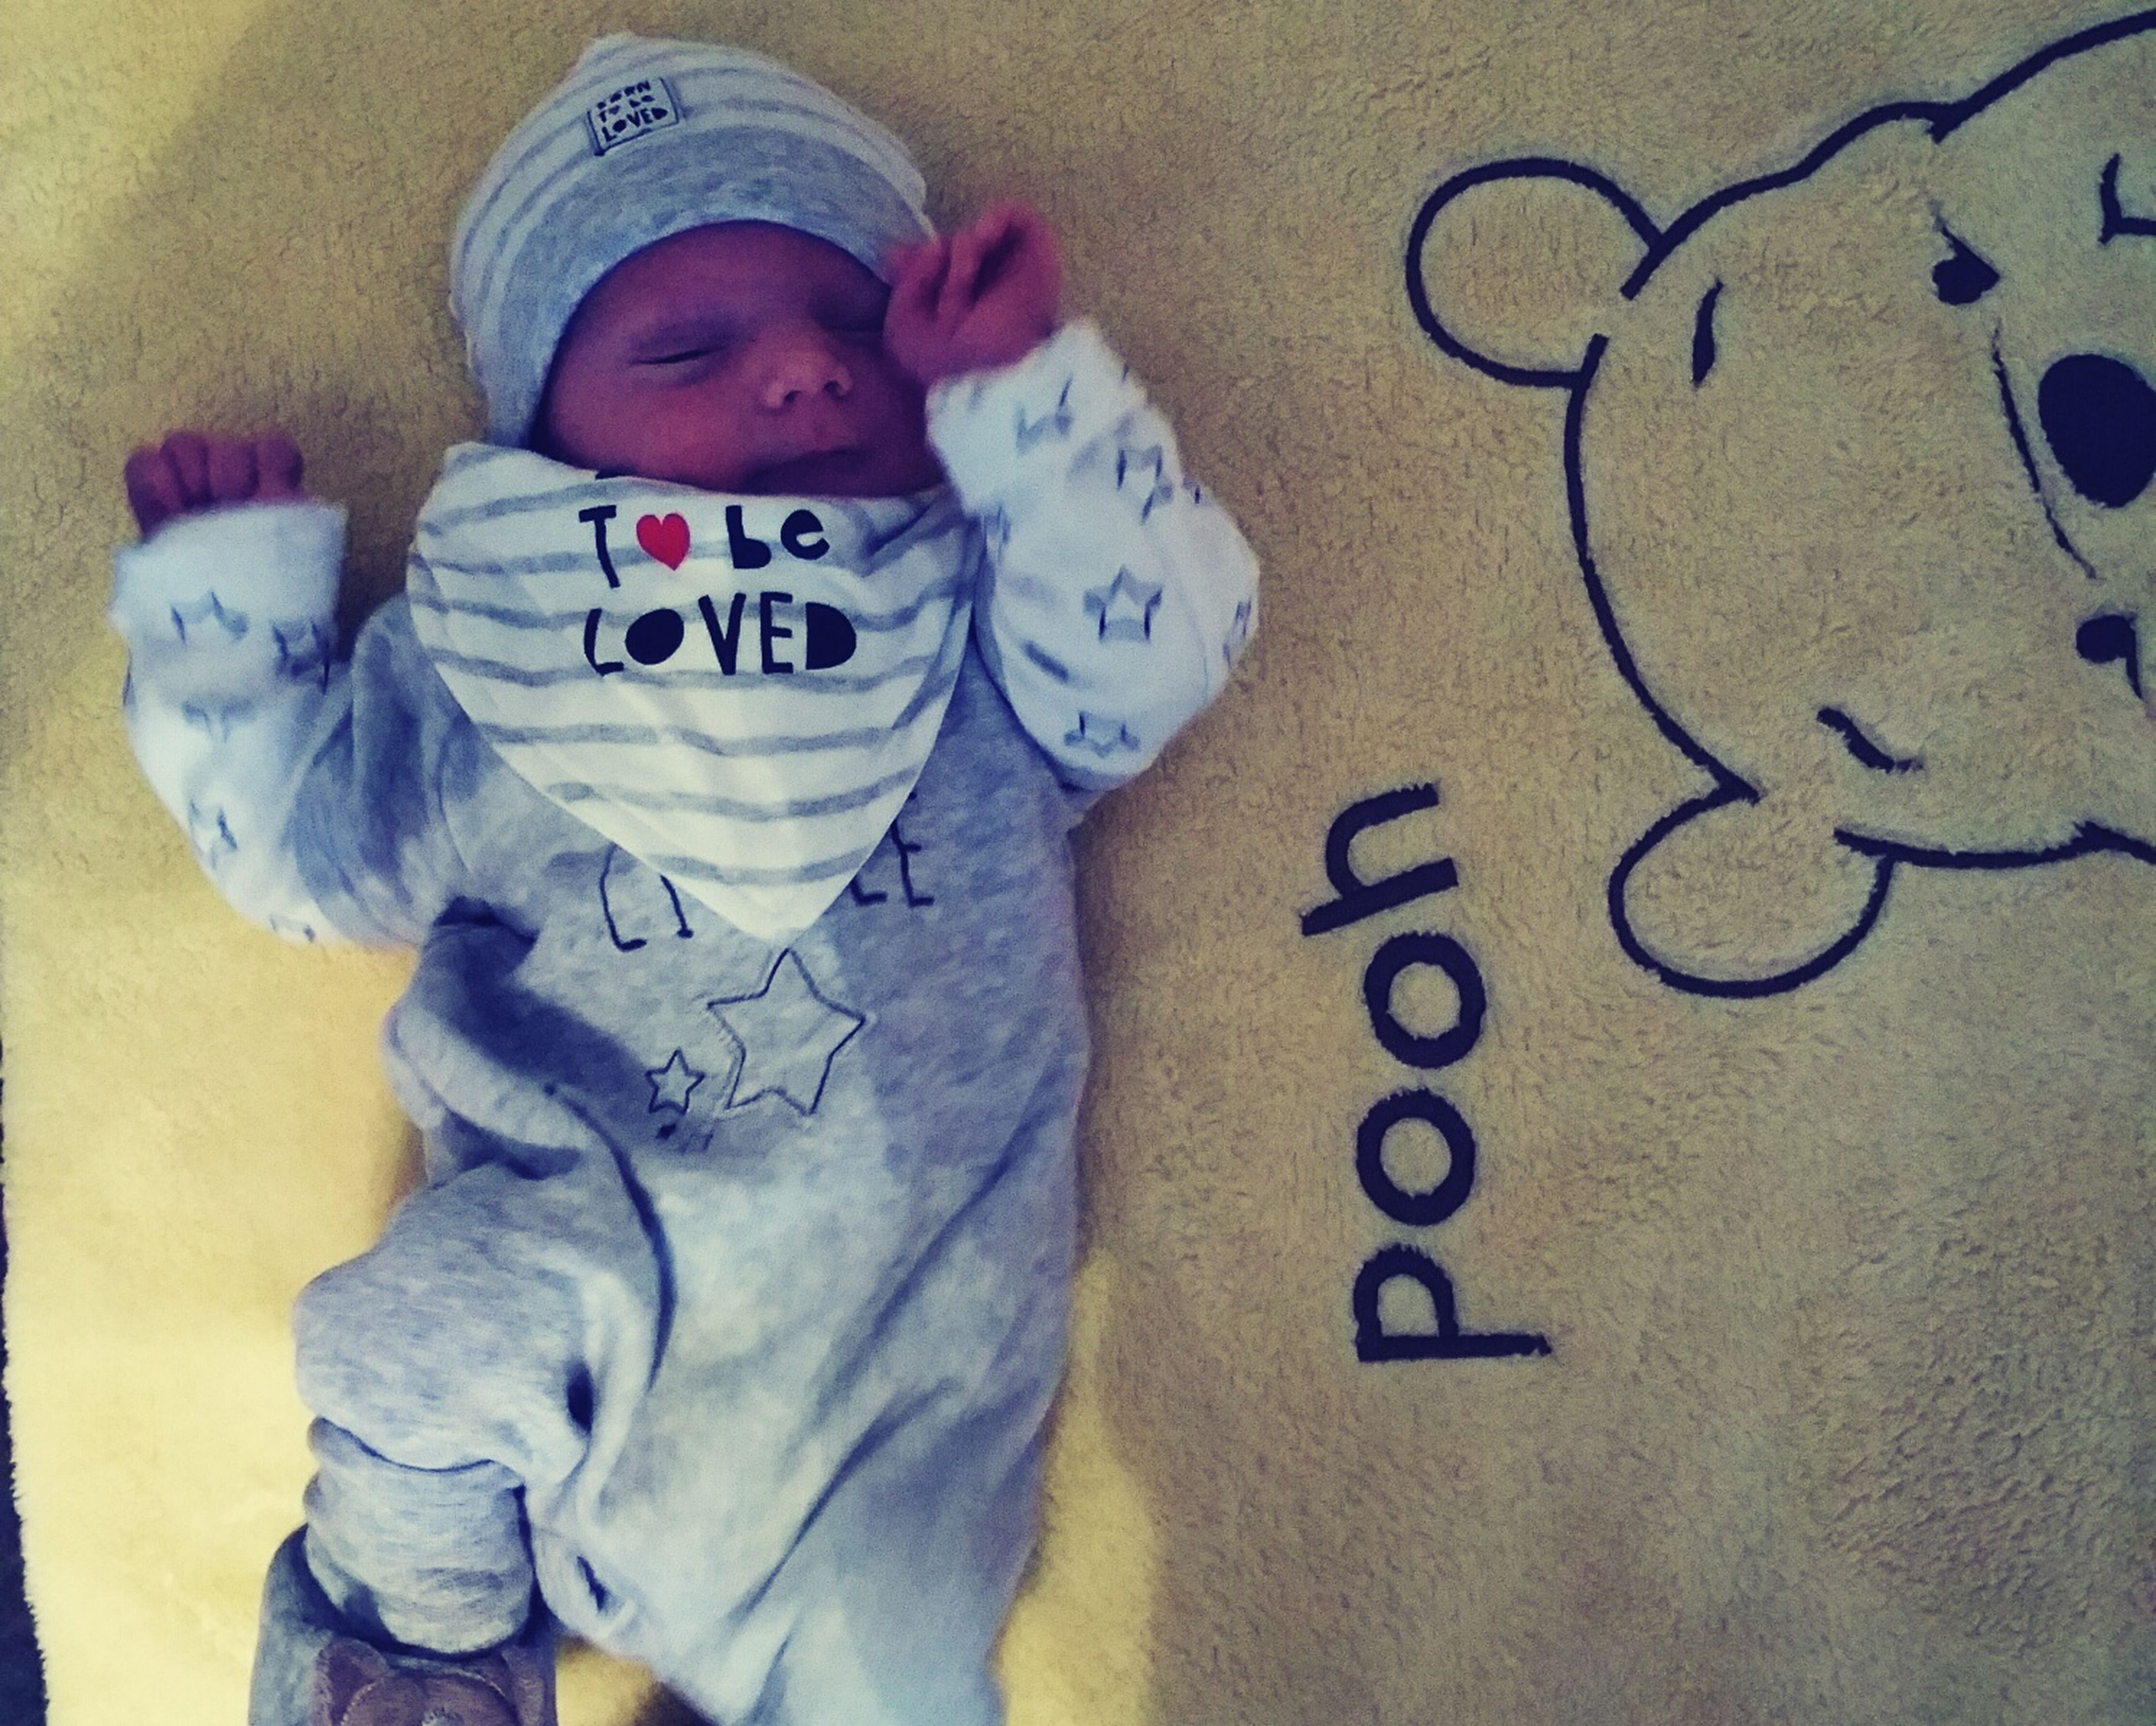 indoors, childhood, text, high angle view, communication, person, innocence, bed, relaxation, baby, cute, babyhood, love, home interior, western script, casual clothing, toddler, boys